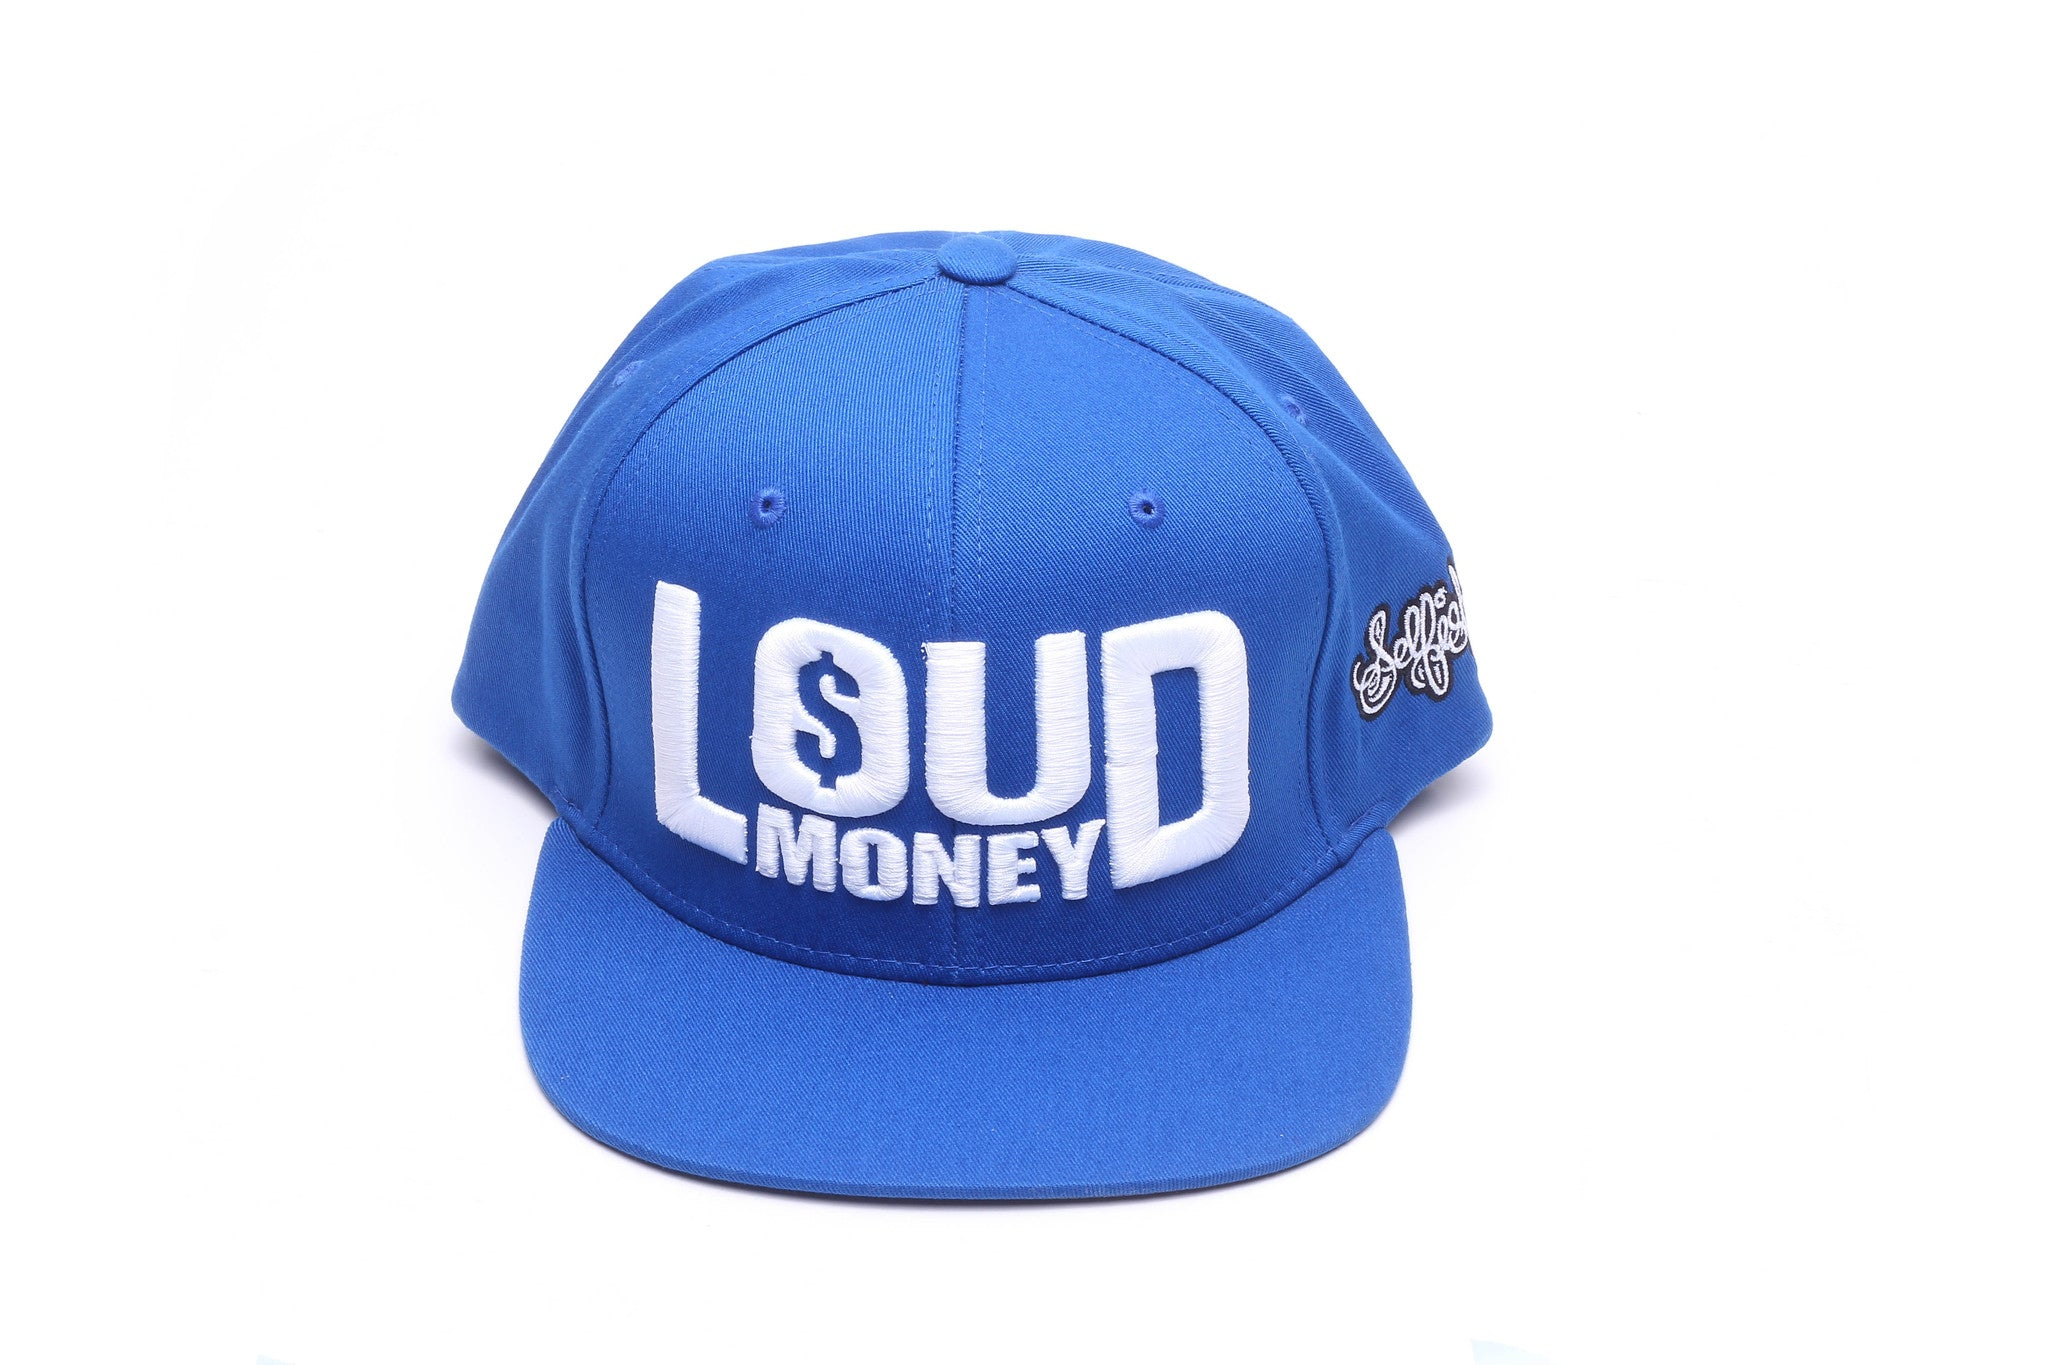 """Loud Money"" Blue/White Snapback Cap"